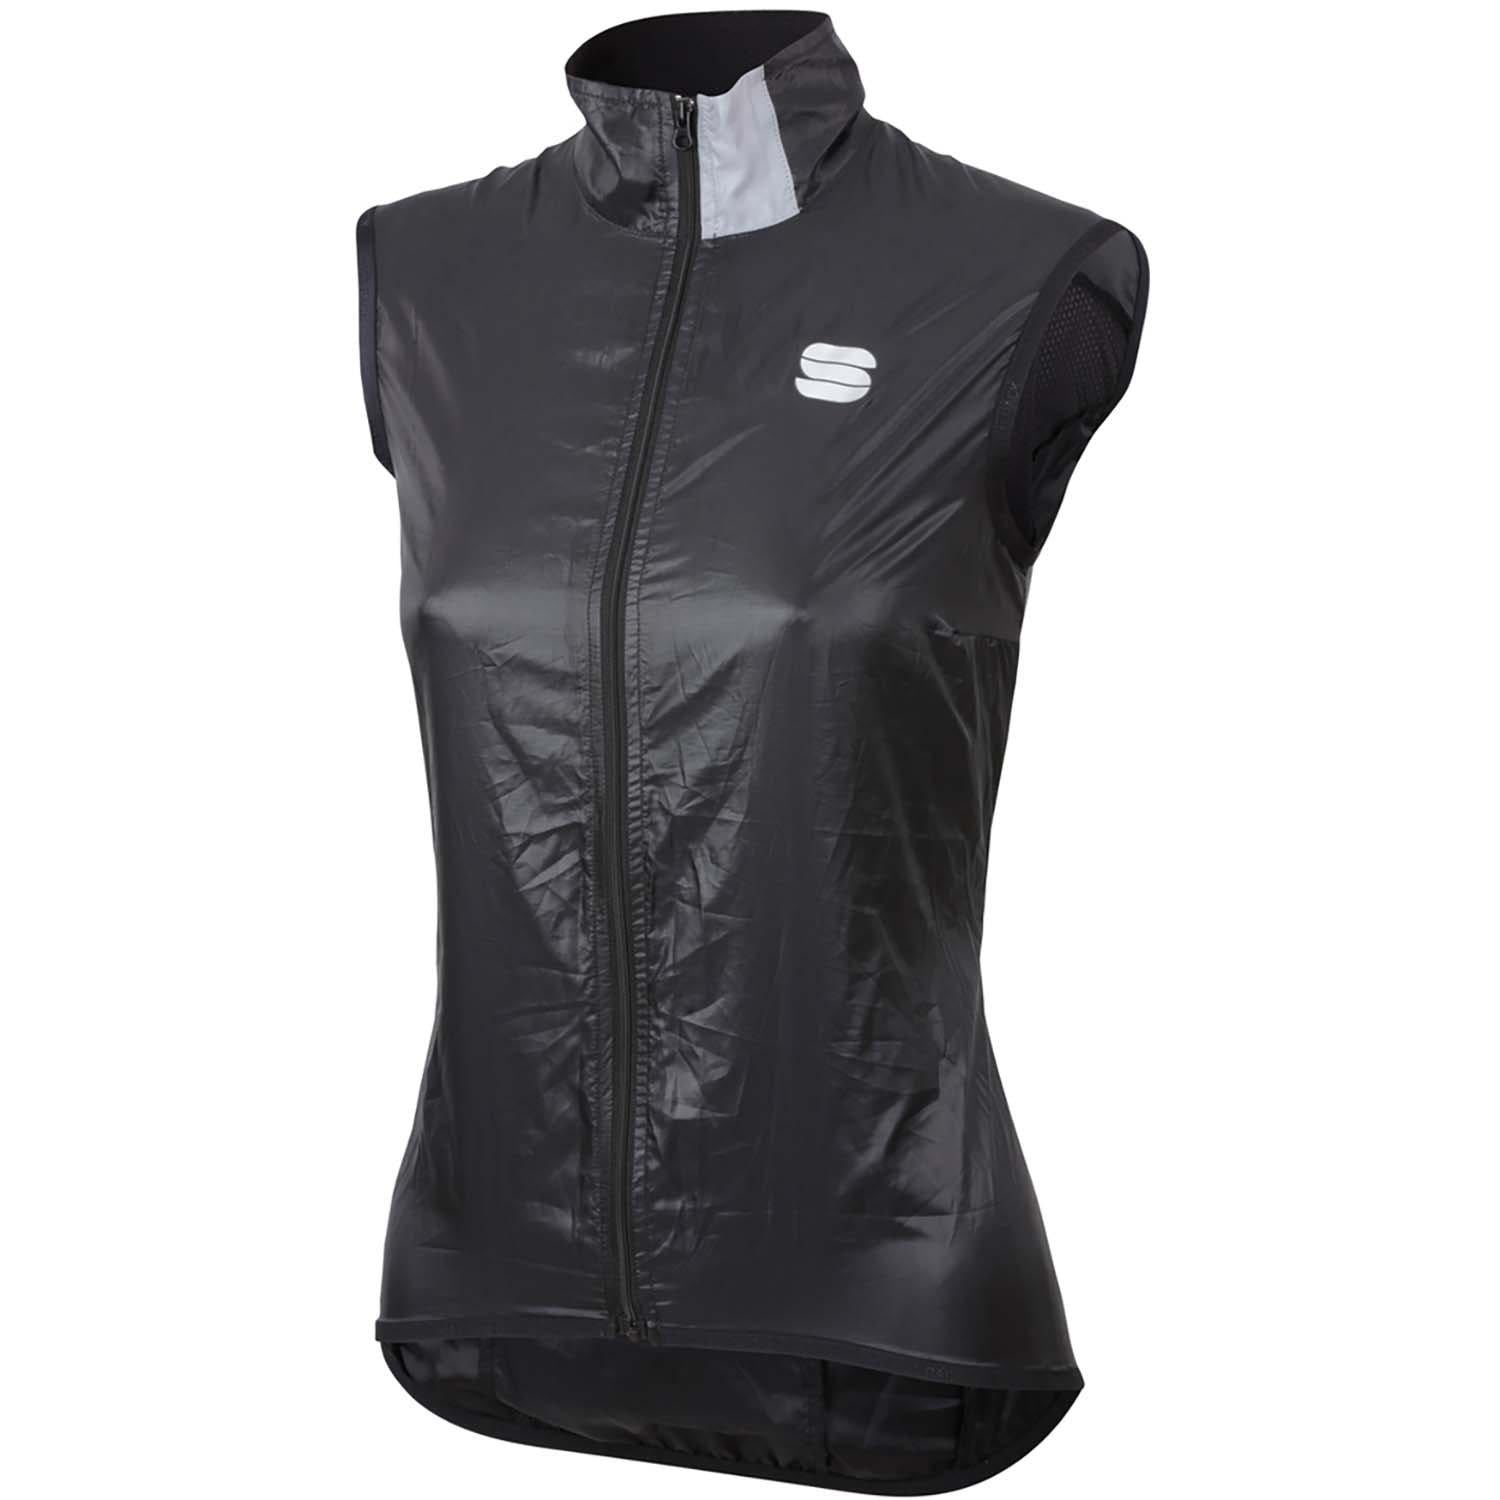 Sportful-Sportful Hot Pack Easylight Women's Vest-Black-XS-SF020290021-saddleback-elite-performance-cycling